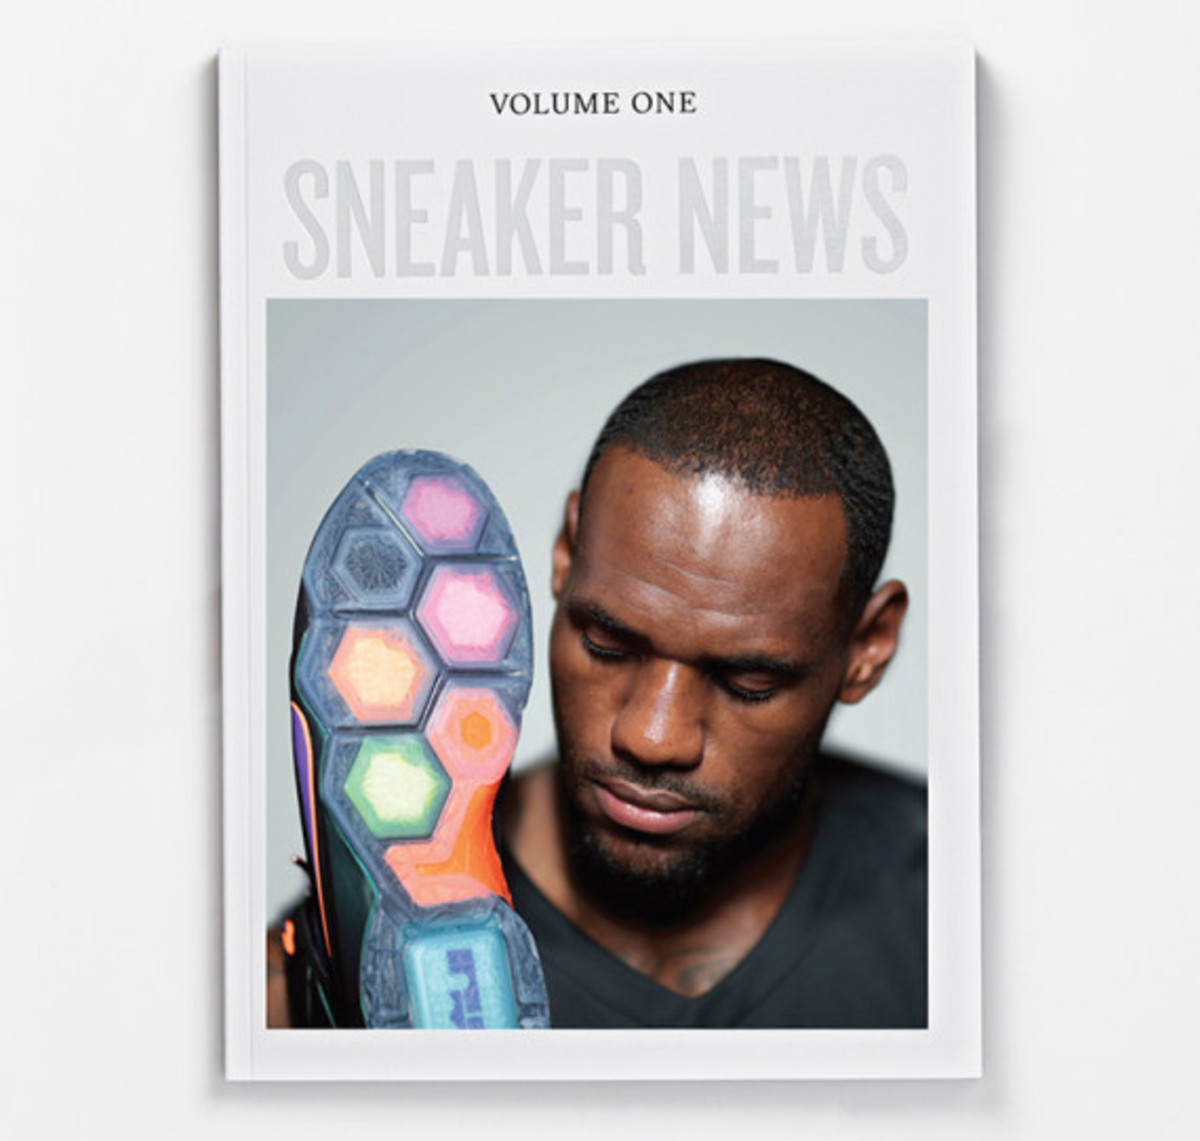 lebron-james-covers-sneaker-news-volume-one-04